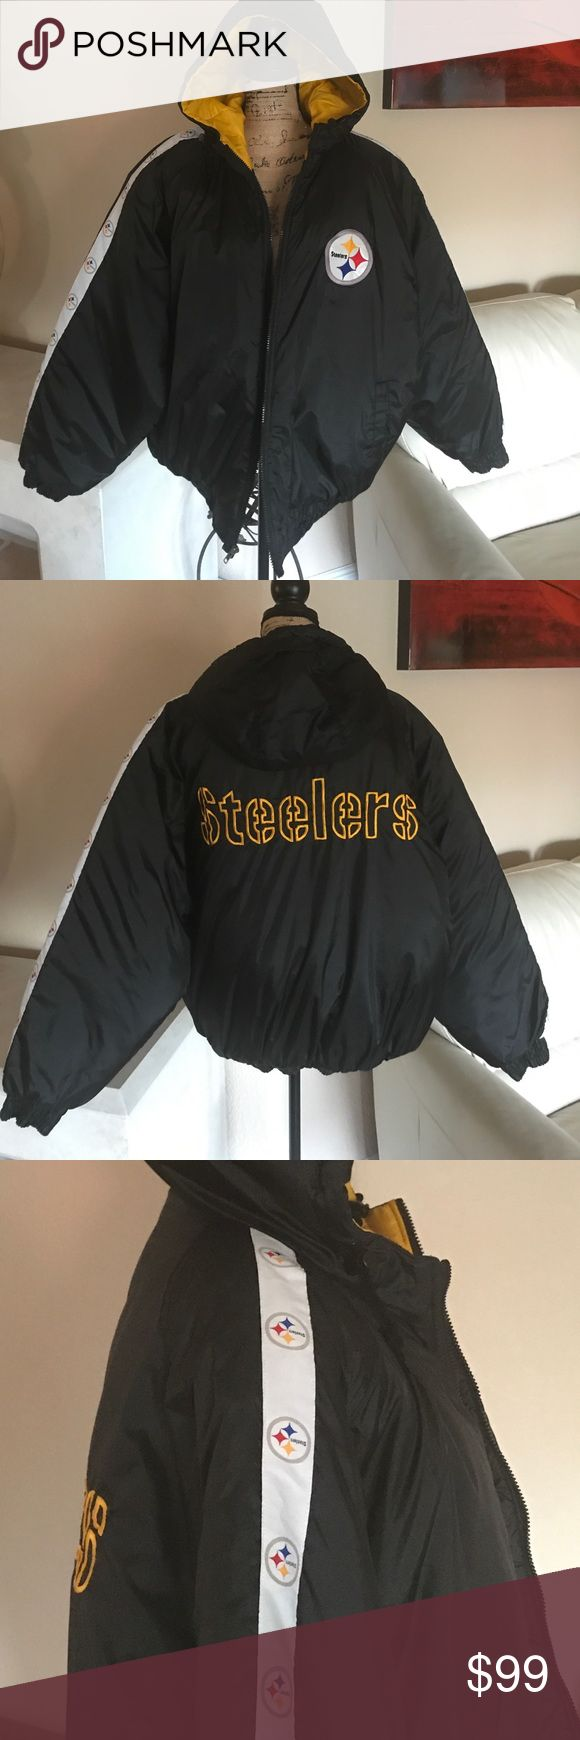 "Pittsburgh Steeler Cold Weather Hooded Jacket NWOT Fro the STEELER FAN🏈🏈🏈Authentic NFL Game Day Pittsburgh Steeler Jacket. NWOT This jacket is perfect for cold weather games and weather. Full Zipper Front and derp inside from pocket. Hood with drawstrings and two side slit front pockets. Size XGD/XL. (XGD=Xtra Grande XL= Xtra Large.). Armpit to armpit measures approximately 30"" Sleeves approximately 27"" Length of Jacket approximately 28"". Great Jacket🏈🏈 Jackets & Coats"